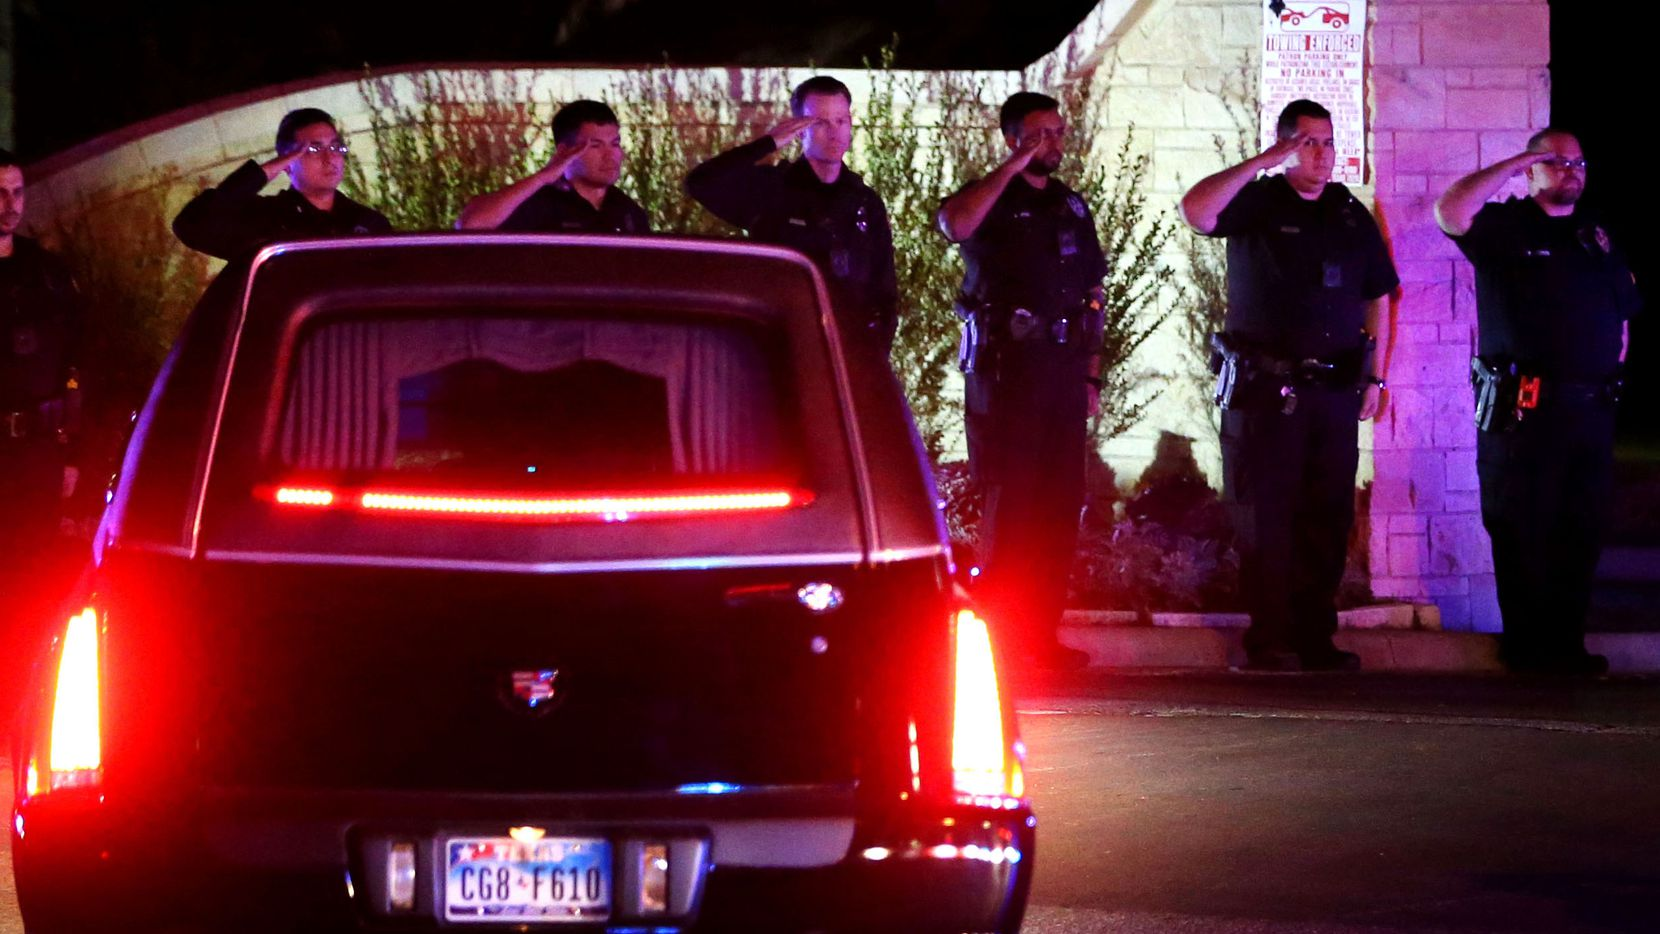 Dallas police officers salute the body of slain Richardson police officer David Sherrard as it is escorted into Restland Memorial Park in Dallas on Thursday, Feb. 8, 2018. Sherrard was fatally shot after responding to a disturbance at an apartment complex in Richardson, Texas on Wednesday, Feb. 7, 2018.